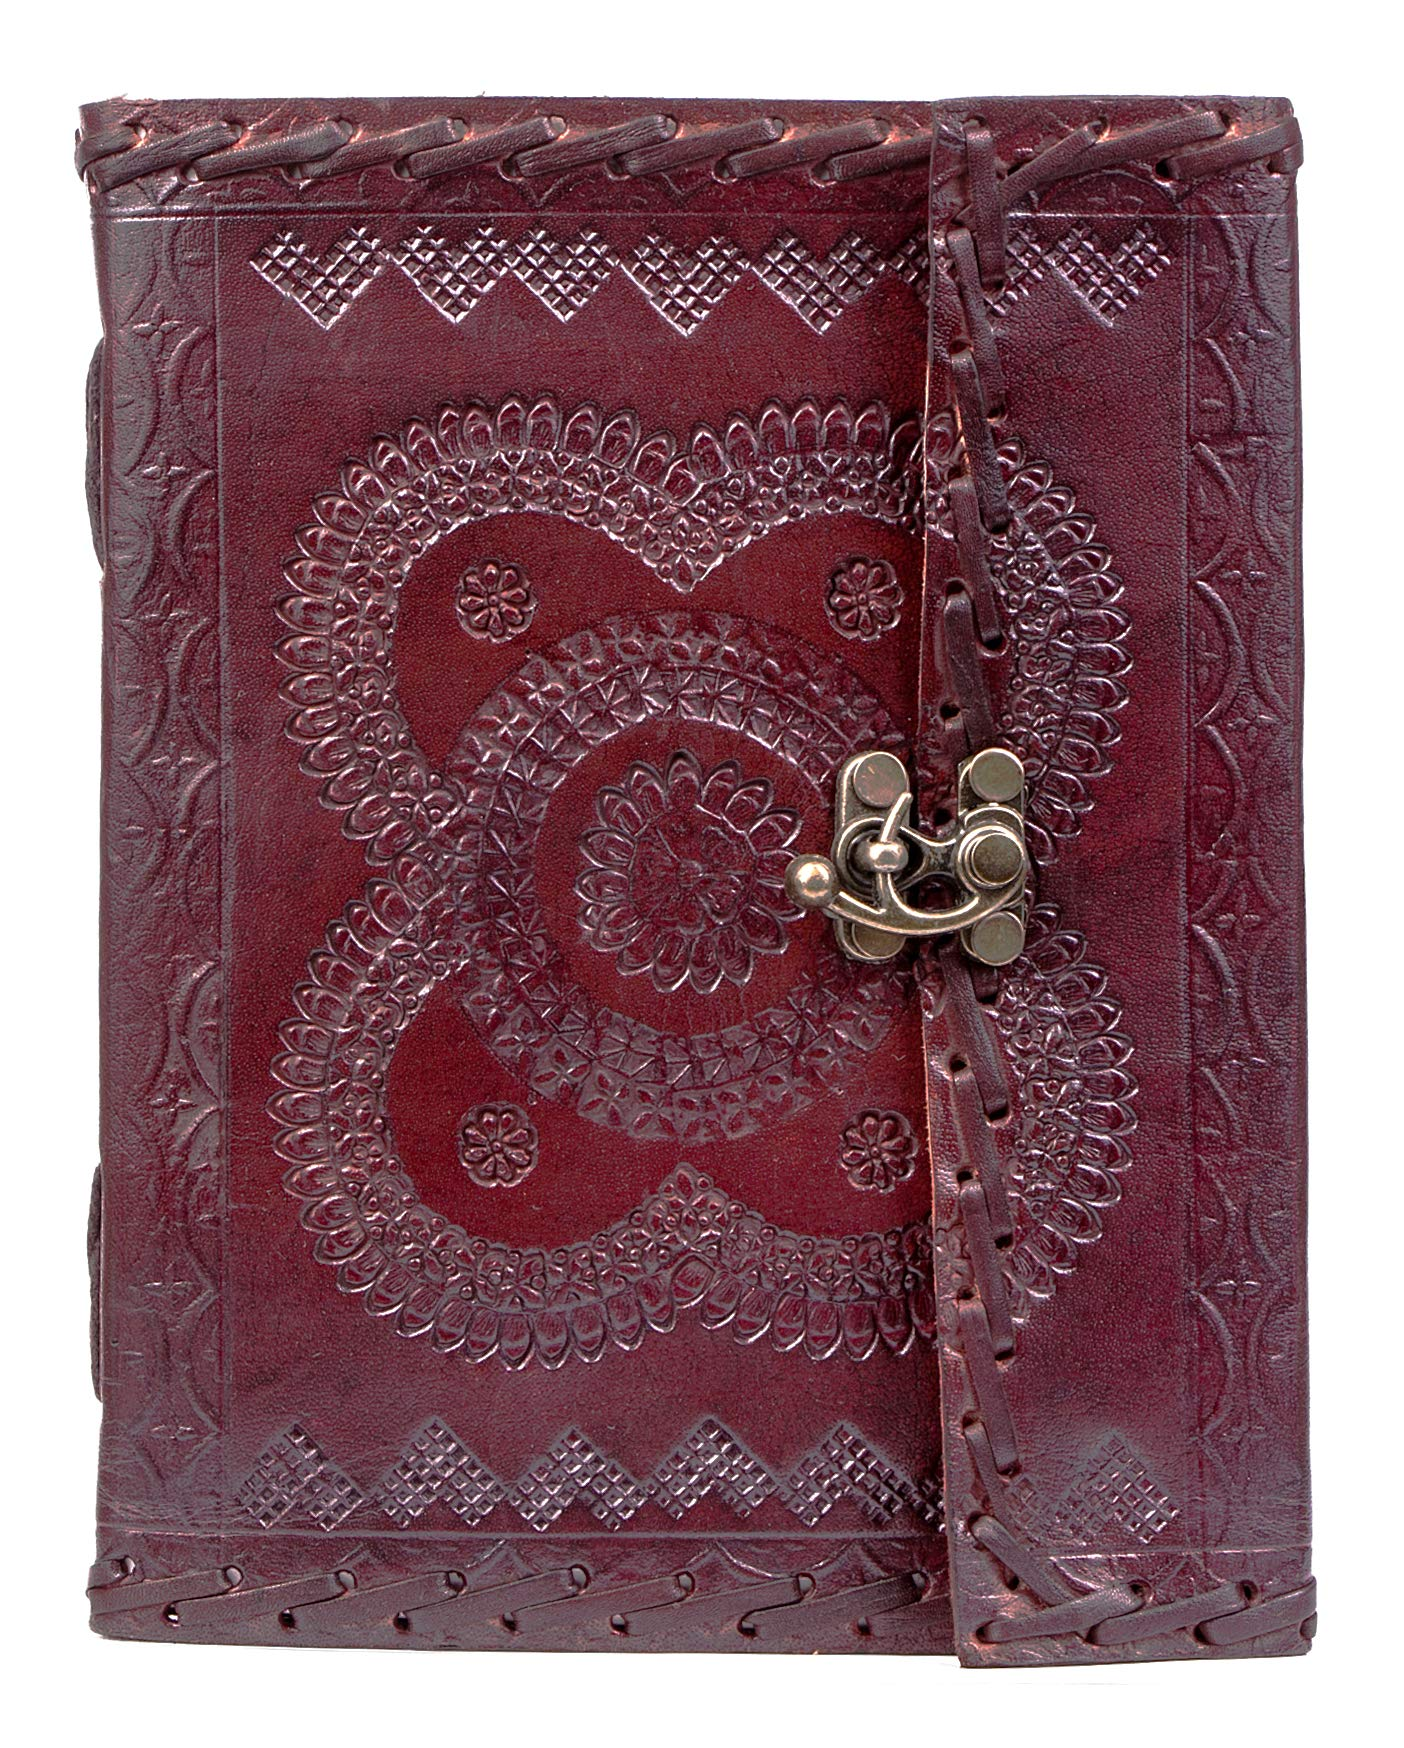 Handmade Large 8'' Embossed Leather Journal Celtic two latches blue stone blank personal Diary notebook refillable journal gift (handembossed)